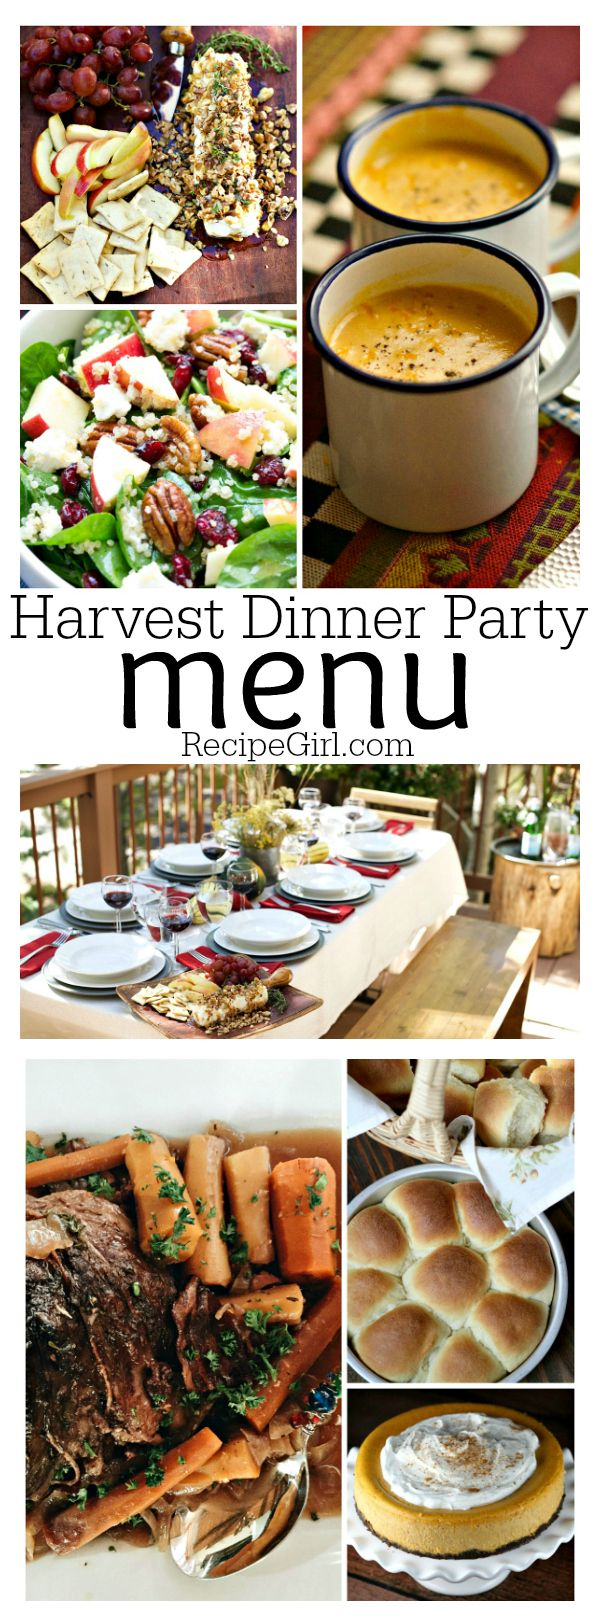 Dinner party for 4 menu ideas